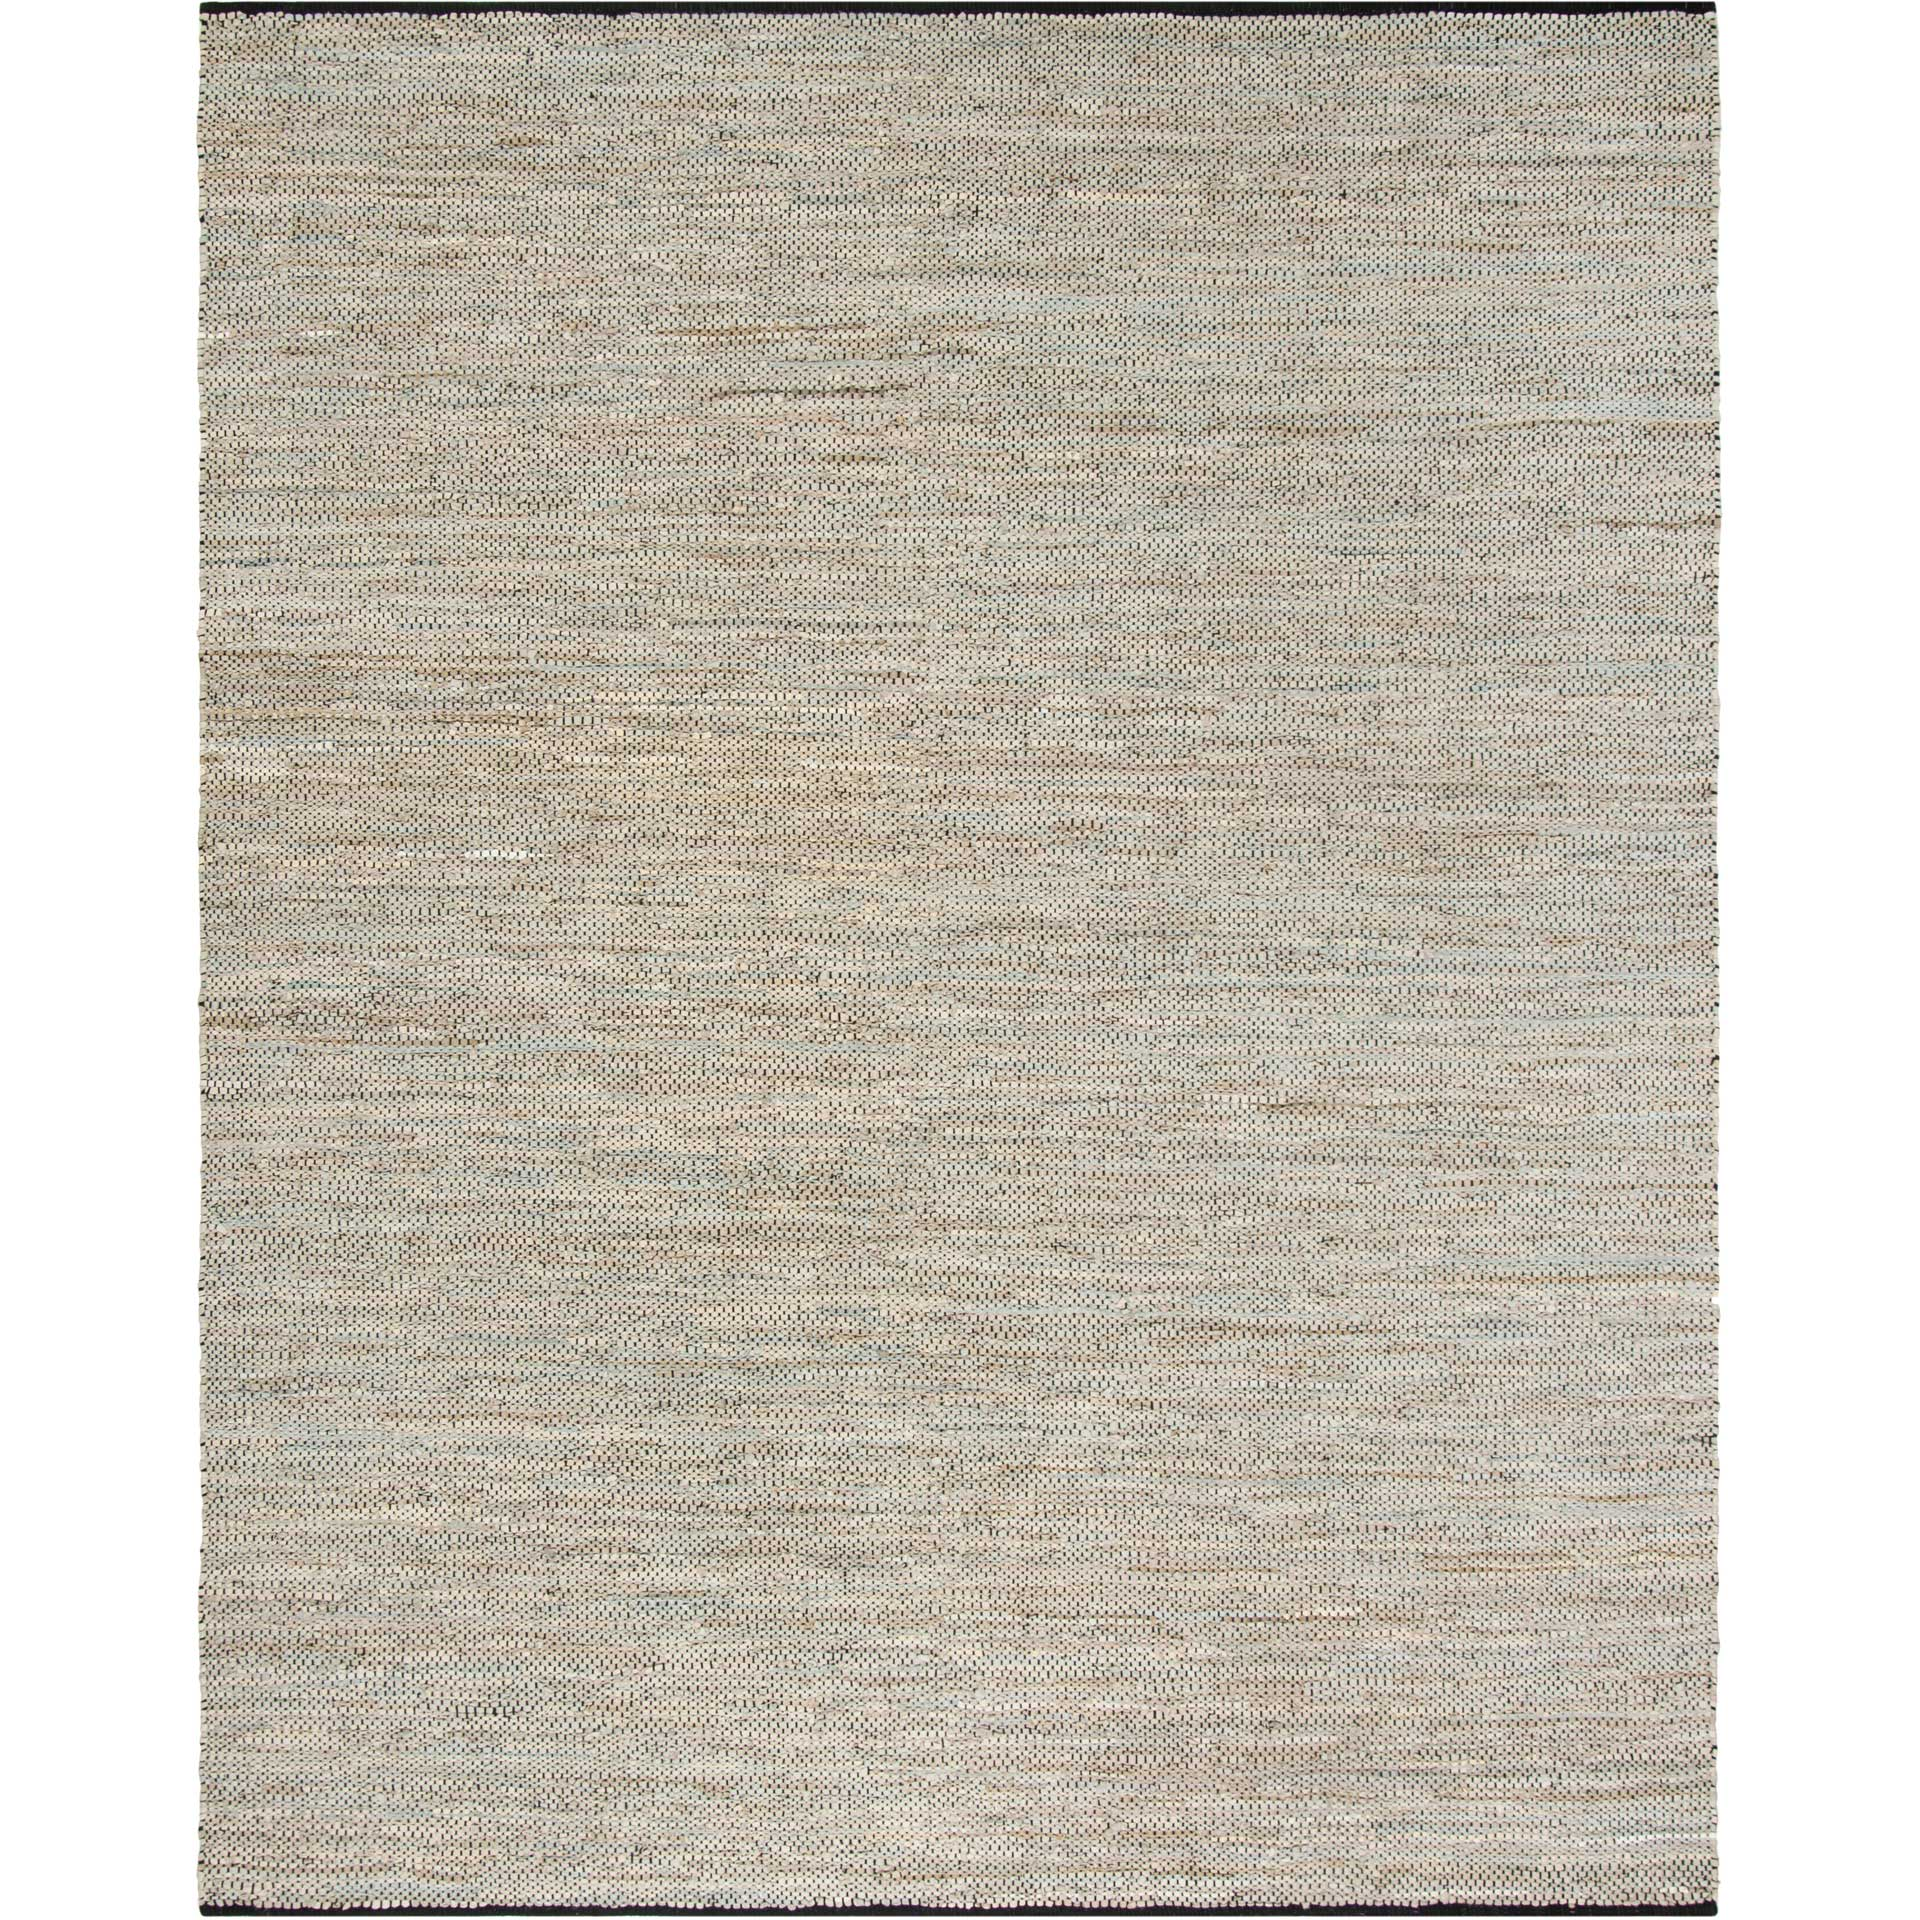 Vintage Leather Light Beige Area Rug